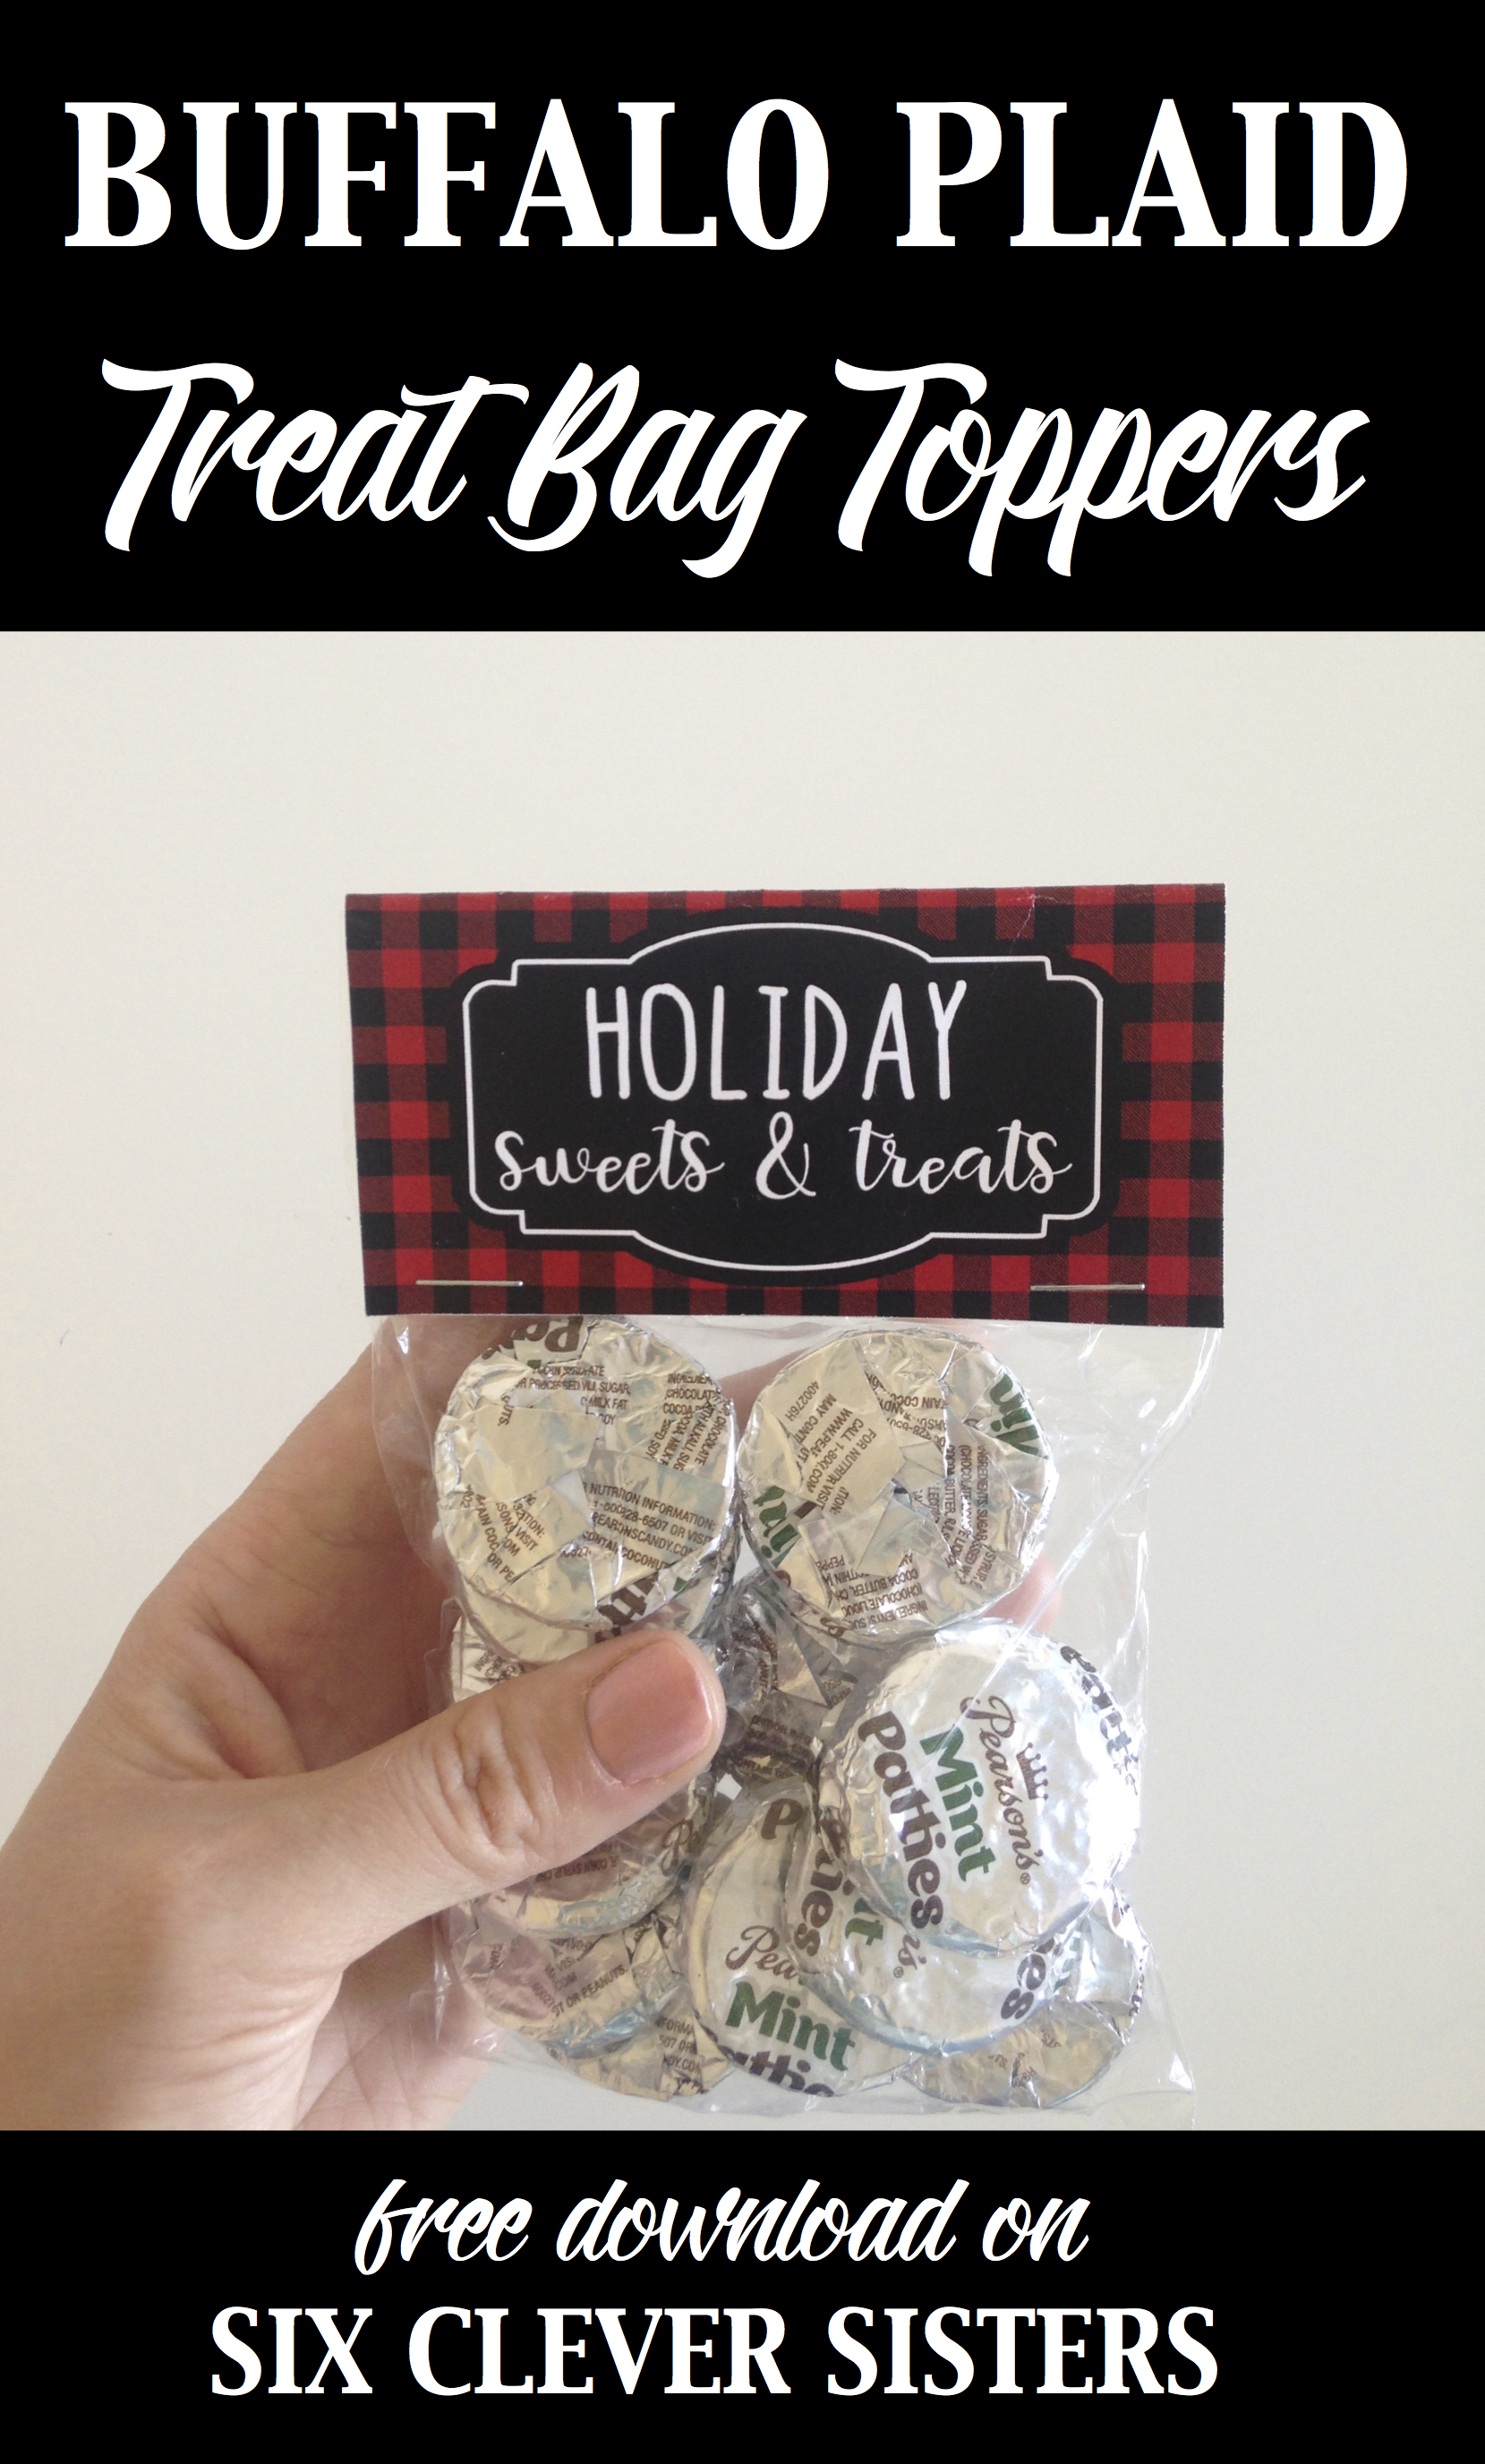 photograph regarding Christmas Bag Toppers Free Printable named Buffalo Plaid Address Bag Toppers 3 Patterns - Absolutely free Printables